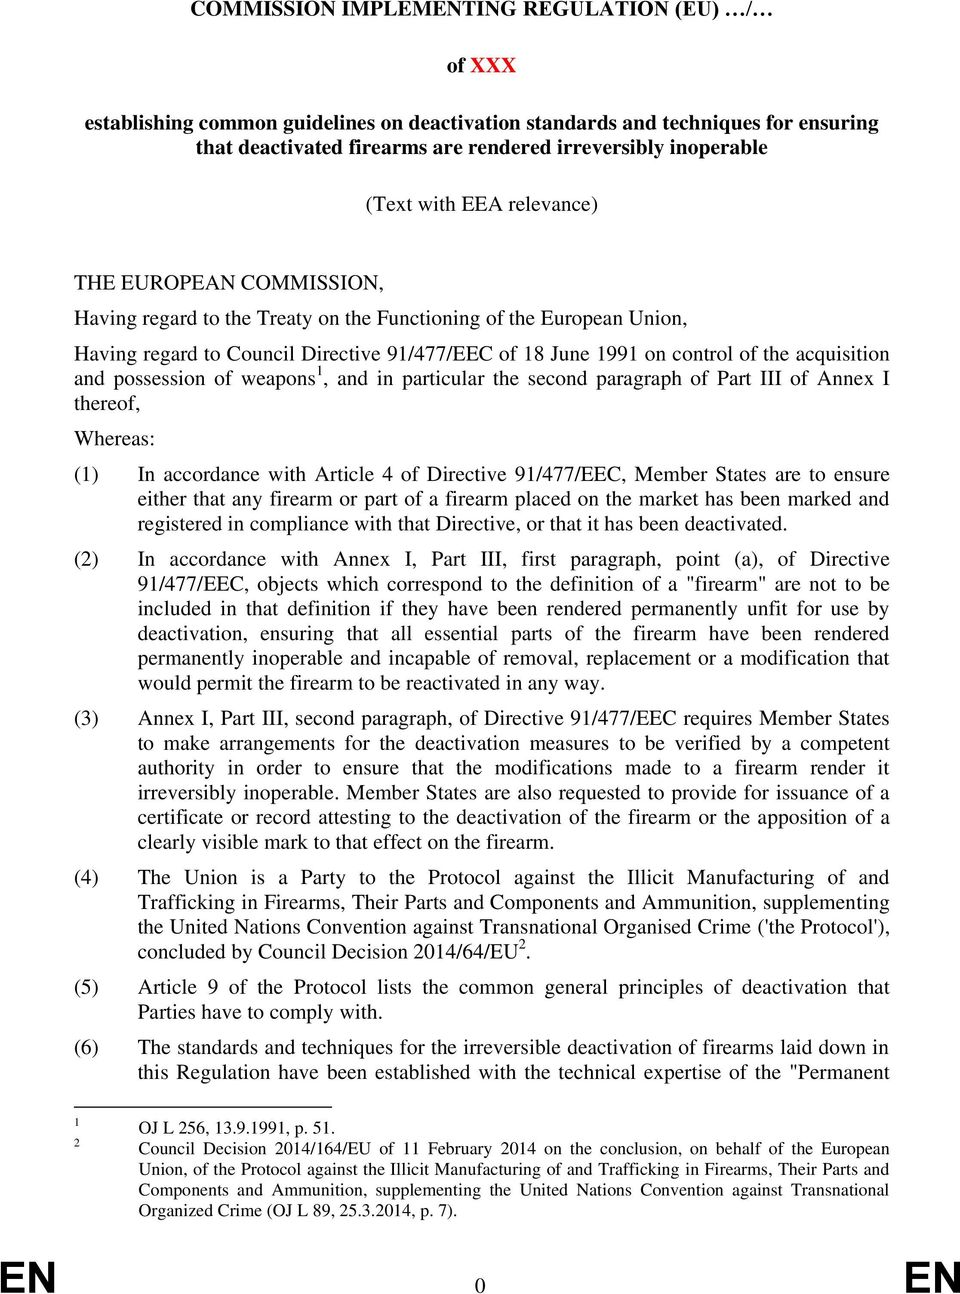 the acquisition and possession of weapons 1, and in particular the second paragraph of Part III of Annex I thereof, Whereas: (1) In accordance with Article 4 of Directive 91/477/EEC, Member States